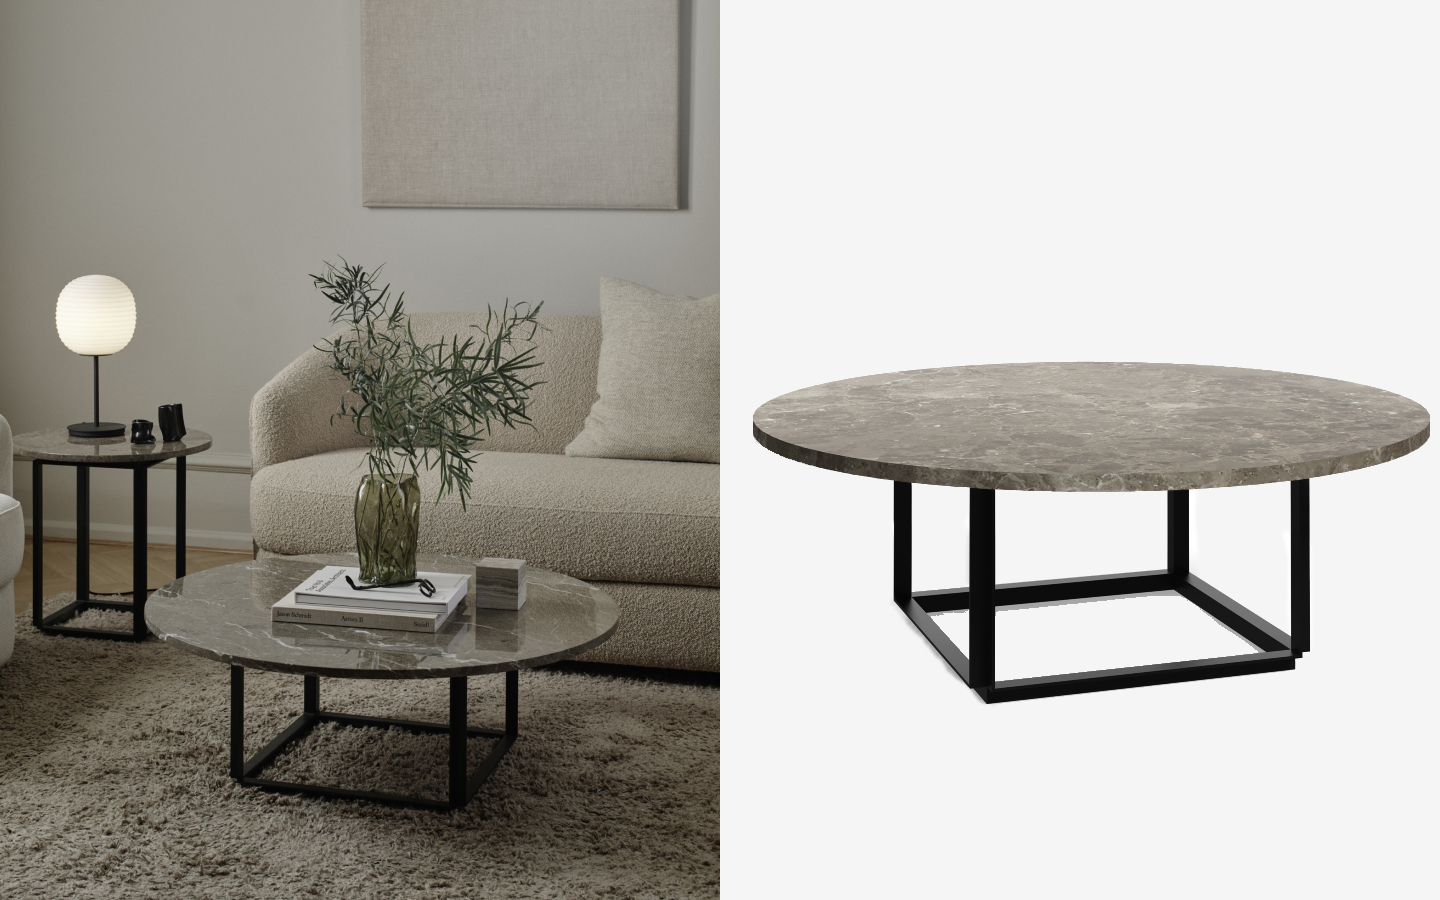 Round side table with grey marble top